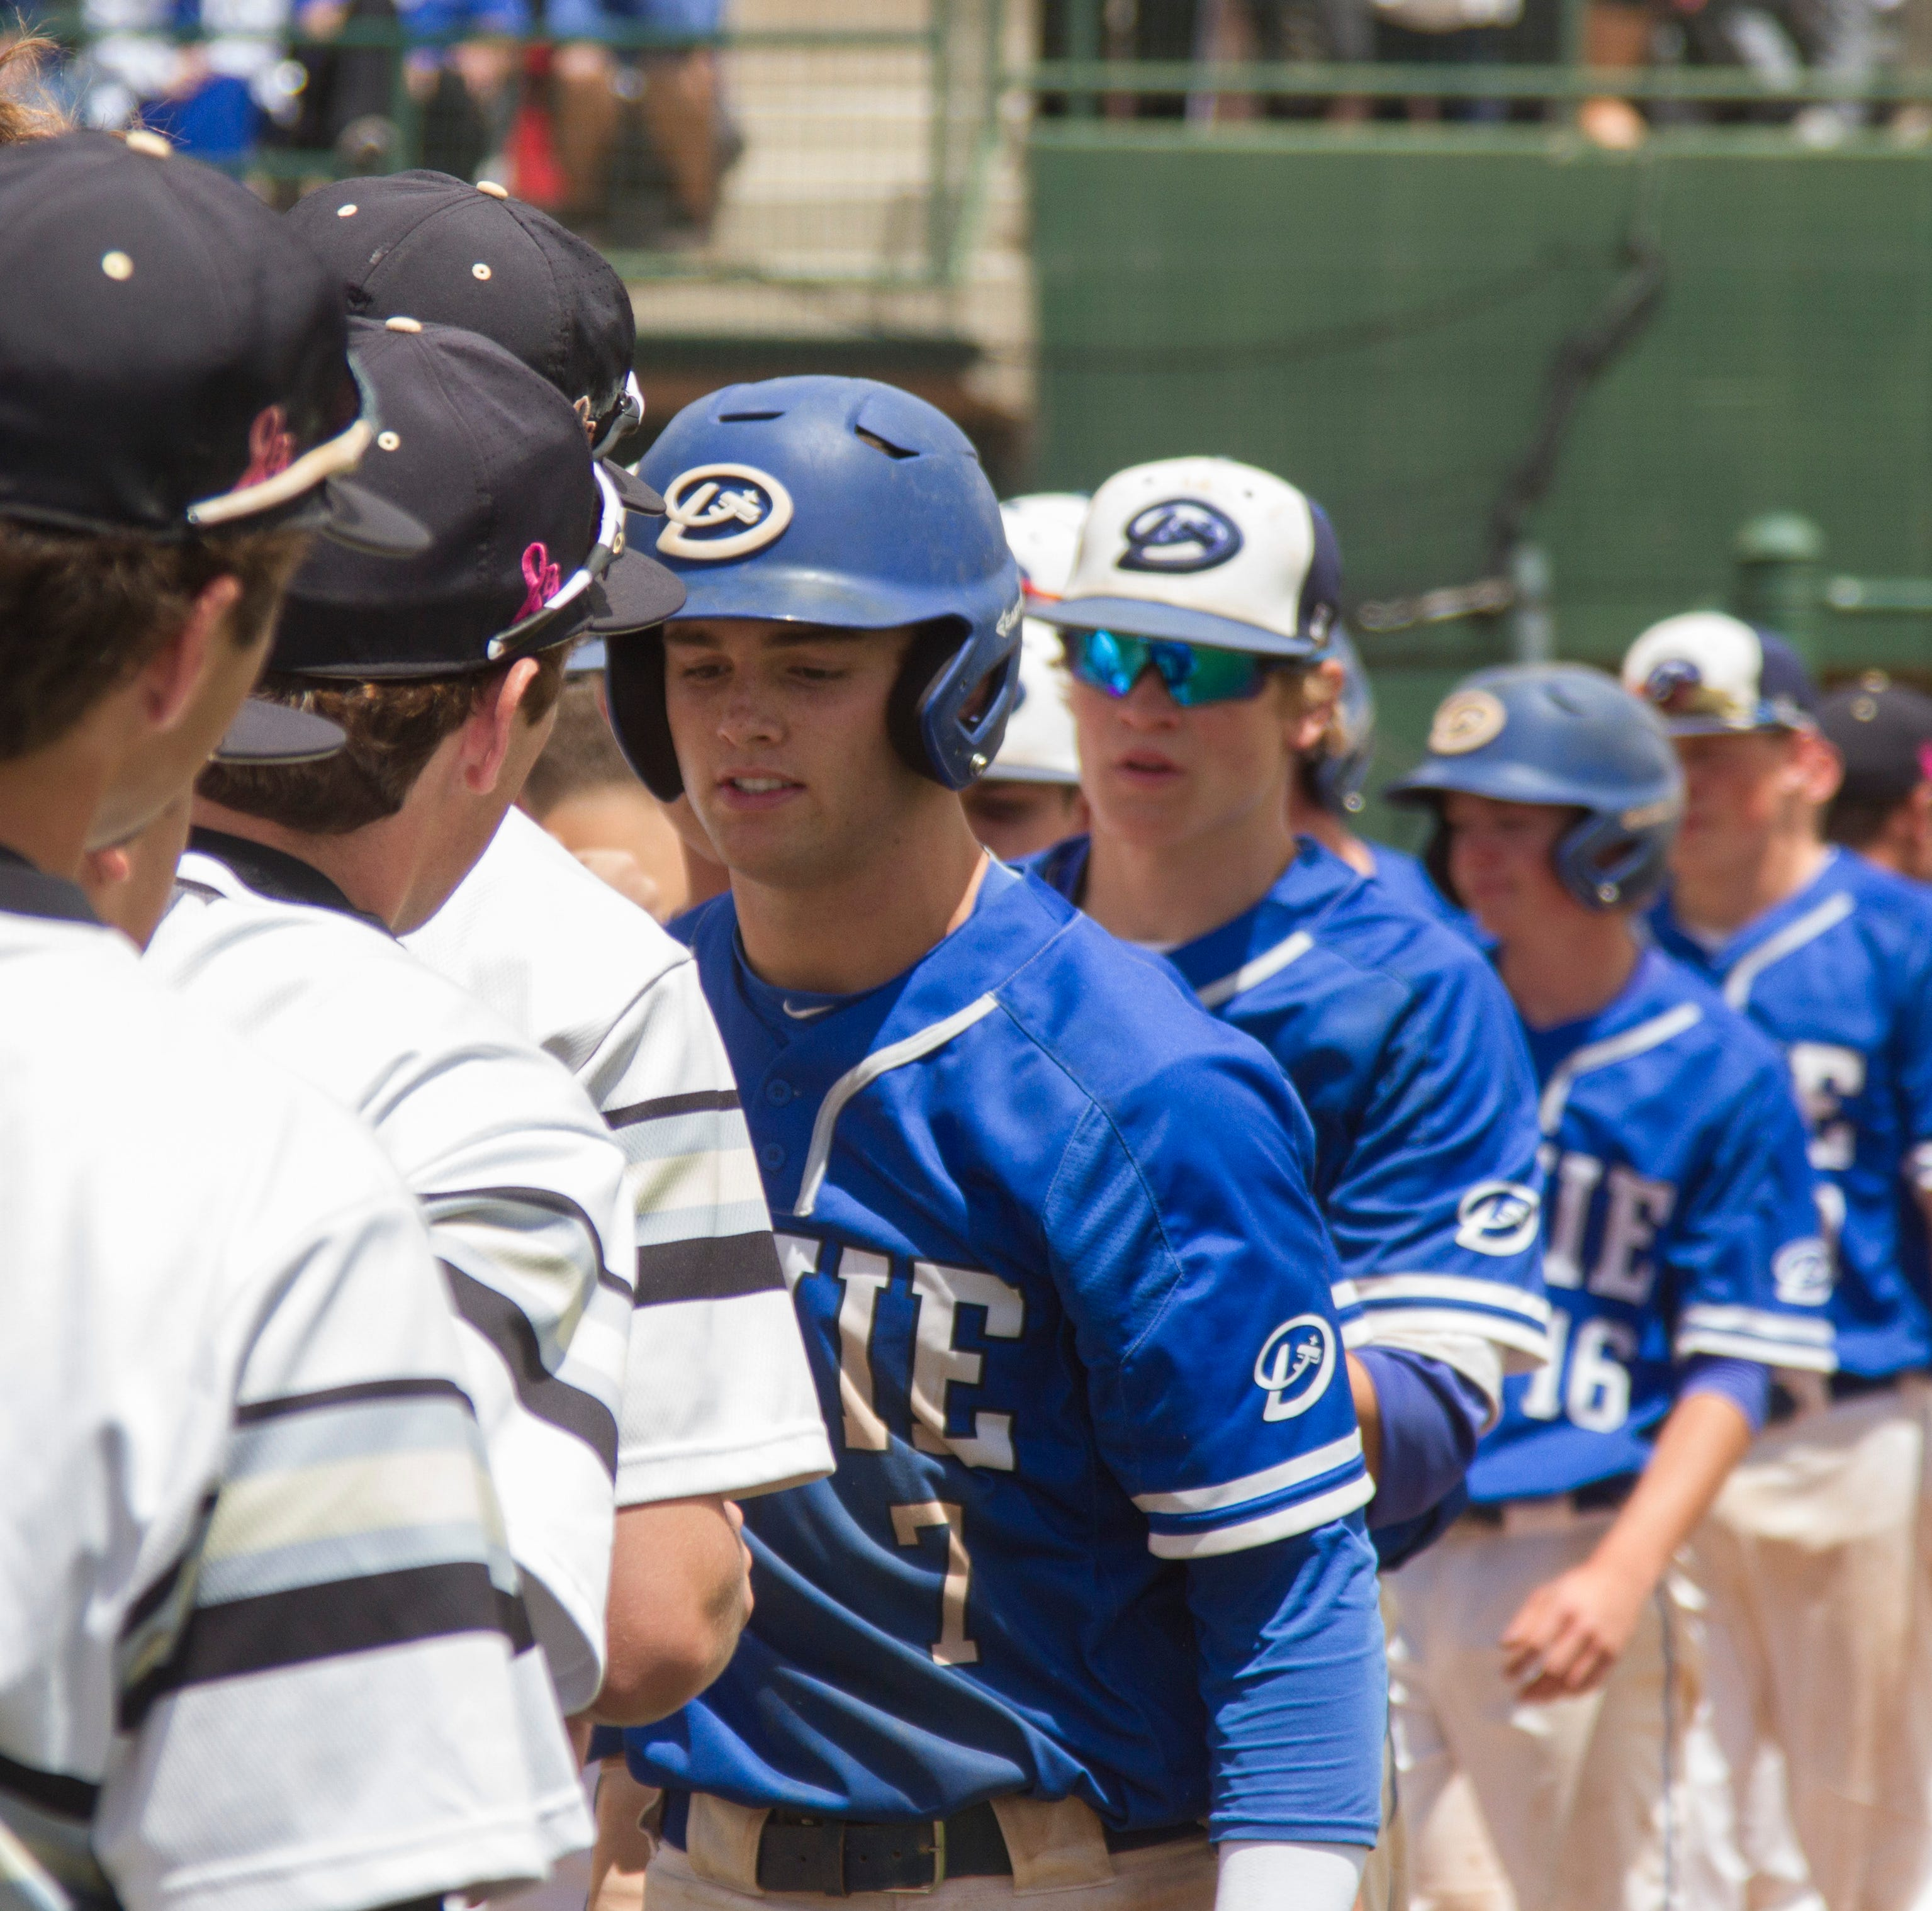 Flyers maintain heart despite falling short of state title hopes